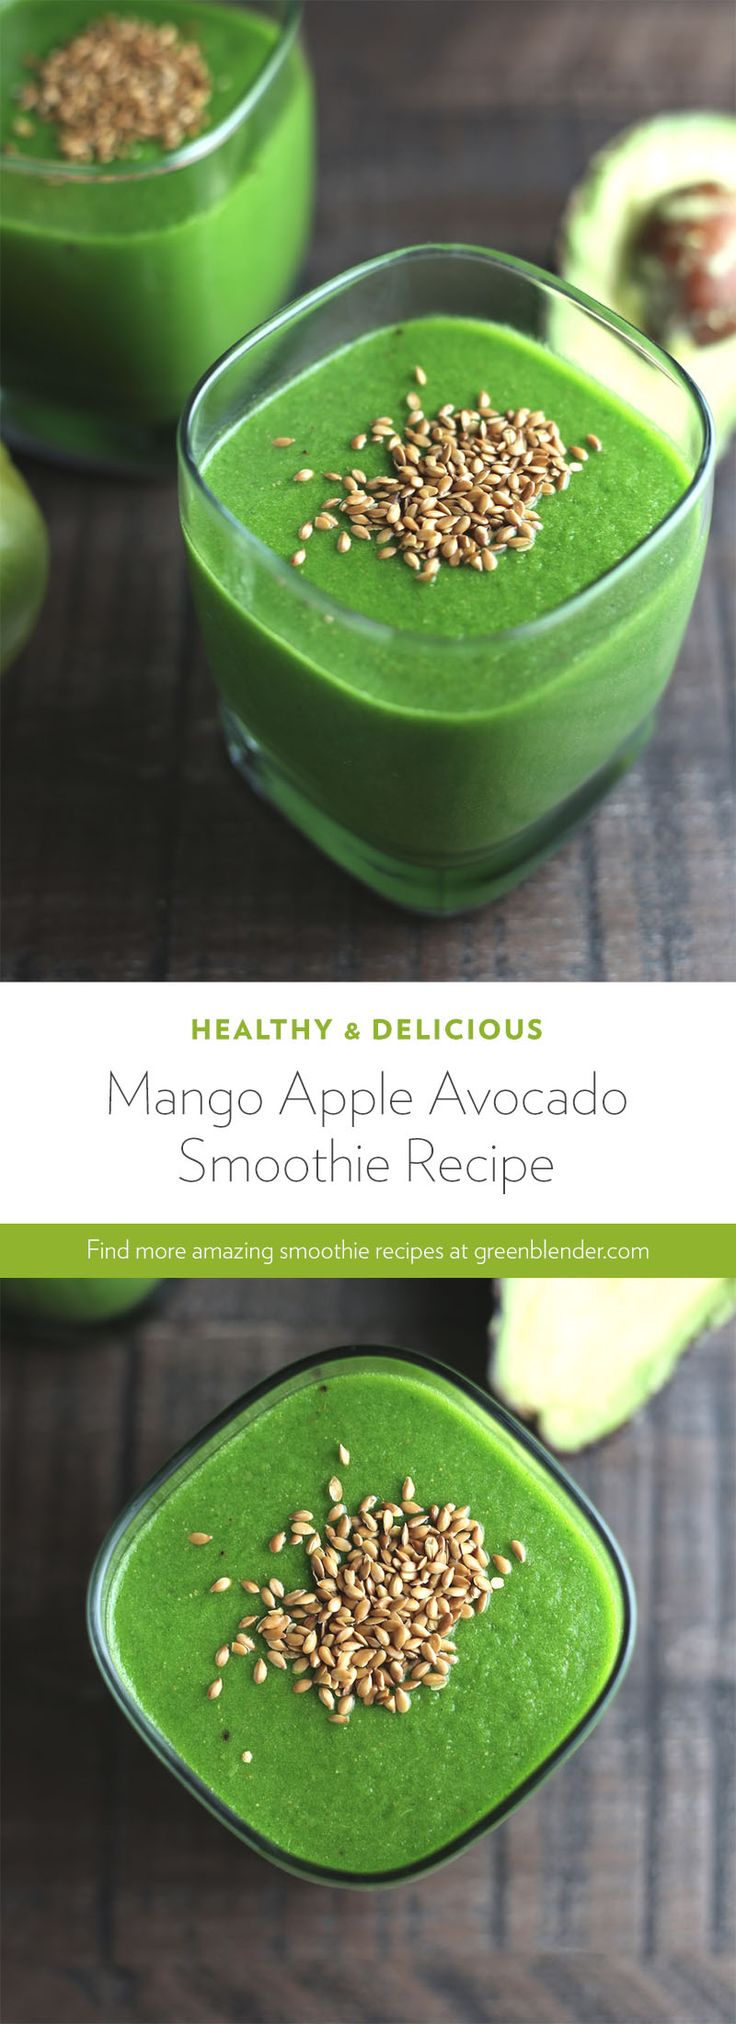 Mangoes are high in beta carotene, as well as vitamin A, which has been connected to improved bone health. Acai berries are low in sugar but high in antioxidants, and may also help with inflammation. Add in half of an avocado (fiber, potassium, and heart-healthy monounsaturated fatty acids), flaxseed for more omega-3 fatty acids and fiber, kale for vitamin A and even more fiber, and an apple for flavanoids and — you guessed it — additional fiber, and you have a highly satisfying snack that…